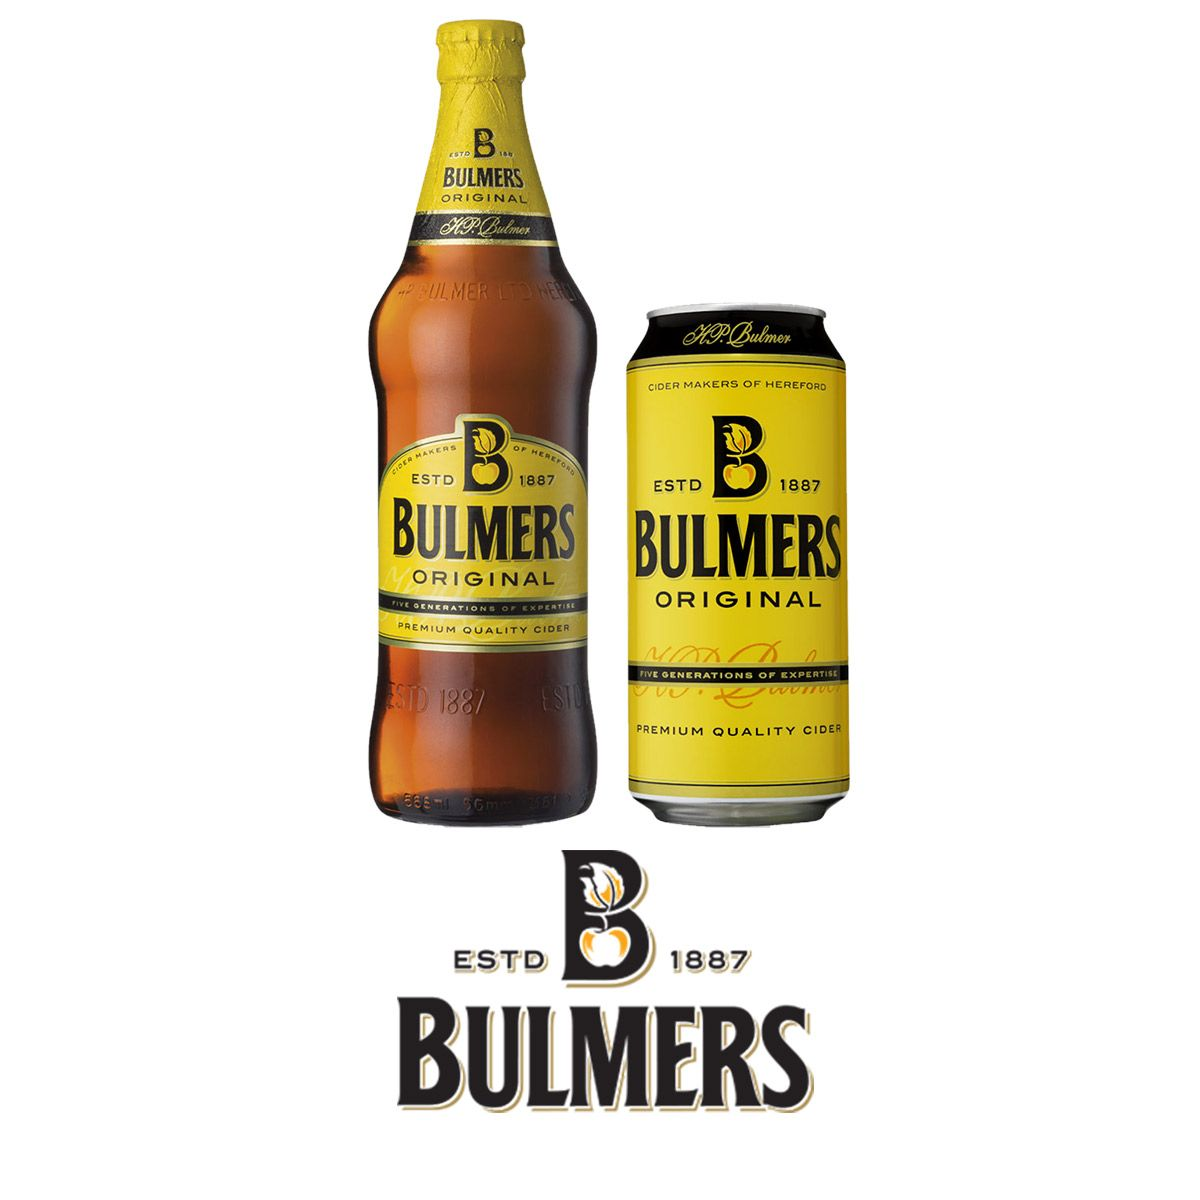 [REVIEW] Bulmers Brand Relaunch